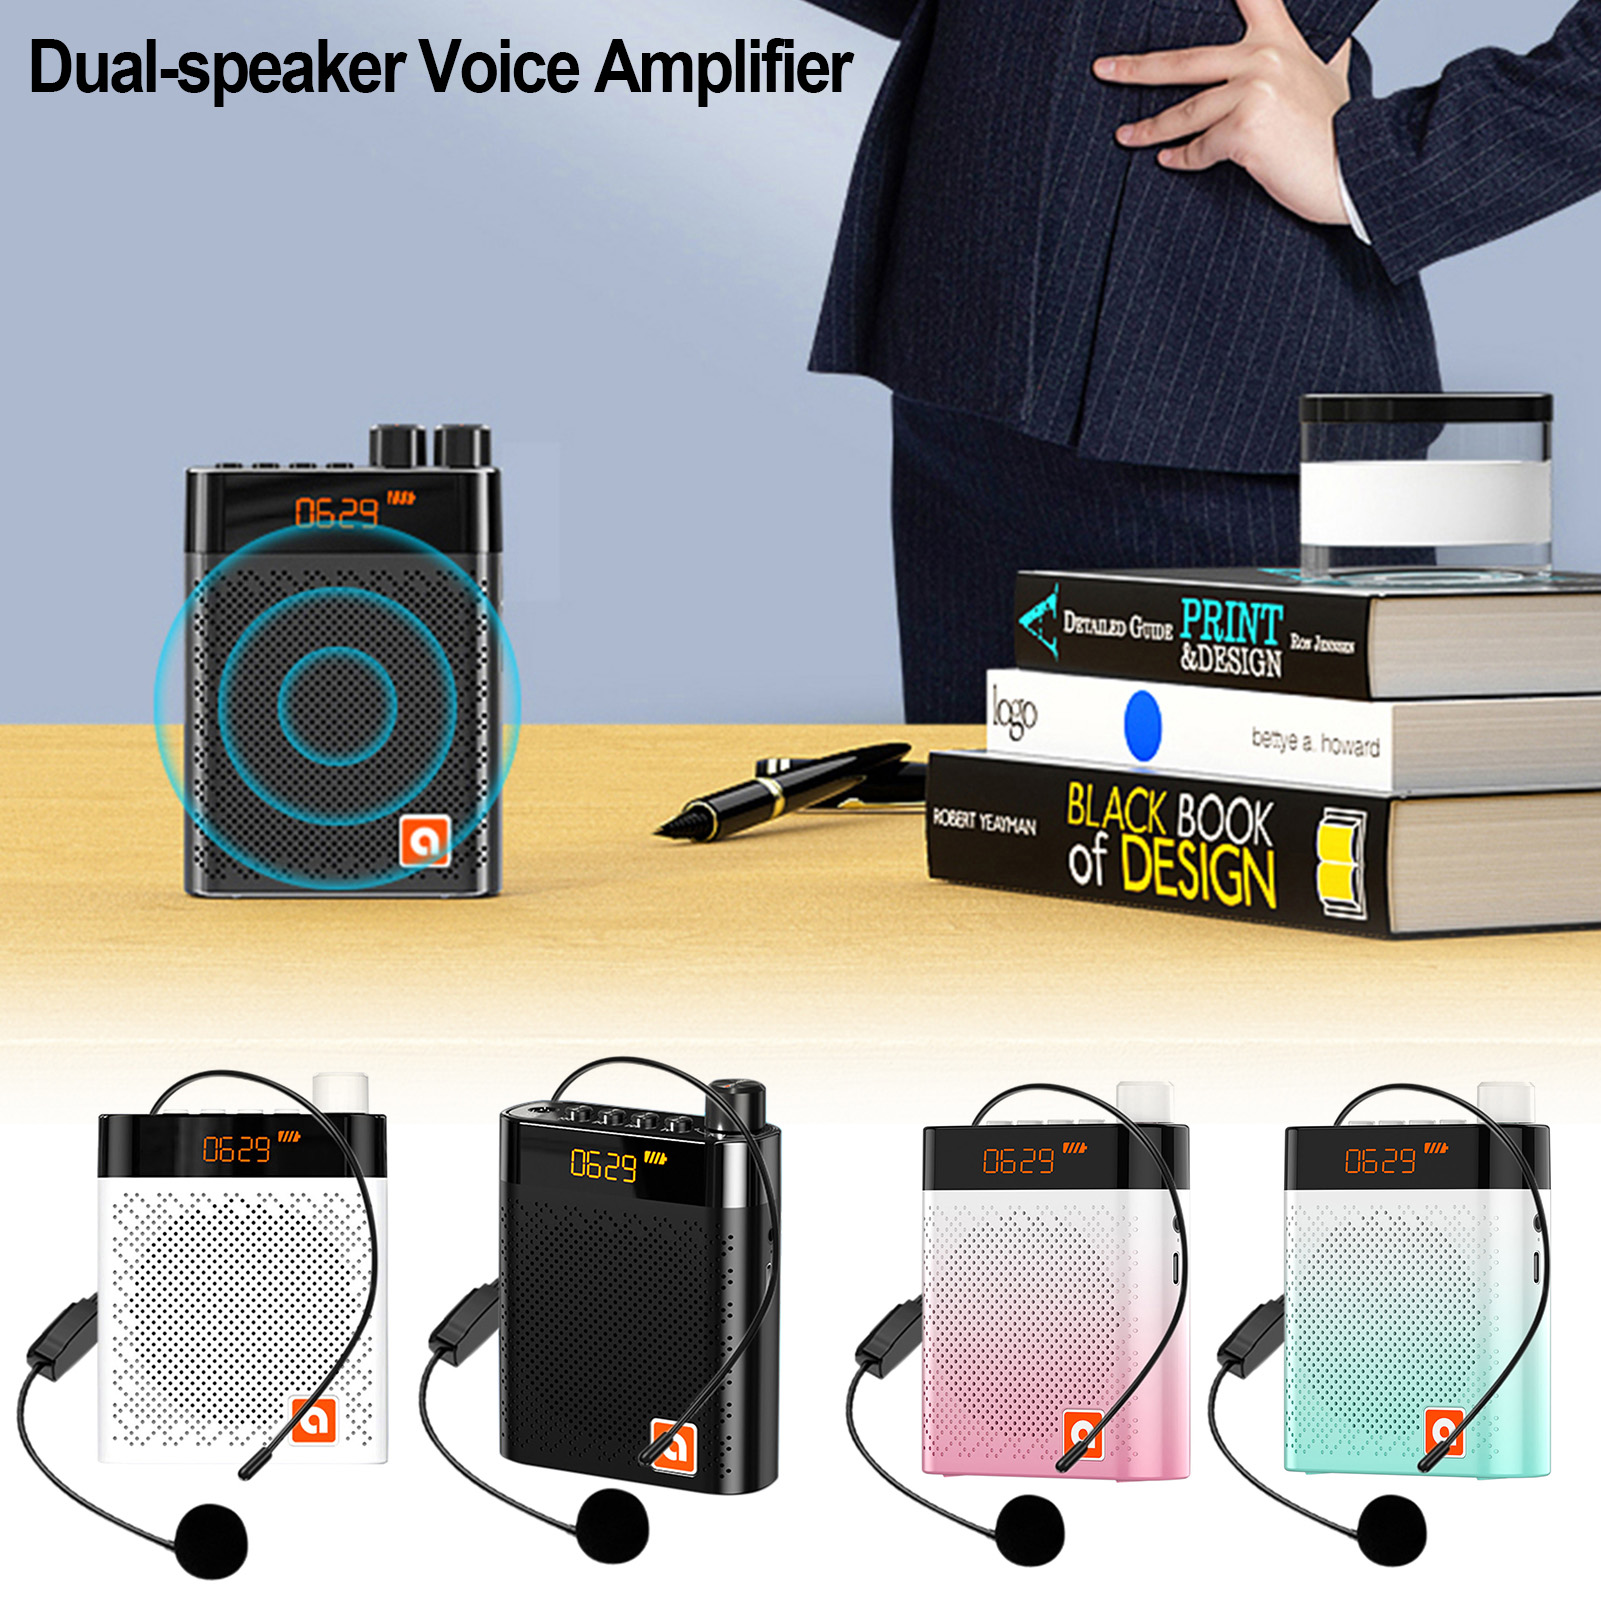 Portable Voice Amplifier Wired Microphone FM Radio AUX Audio Recording Bluetooth Speaker For Teachers Instructor Tourrist Yoga